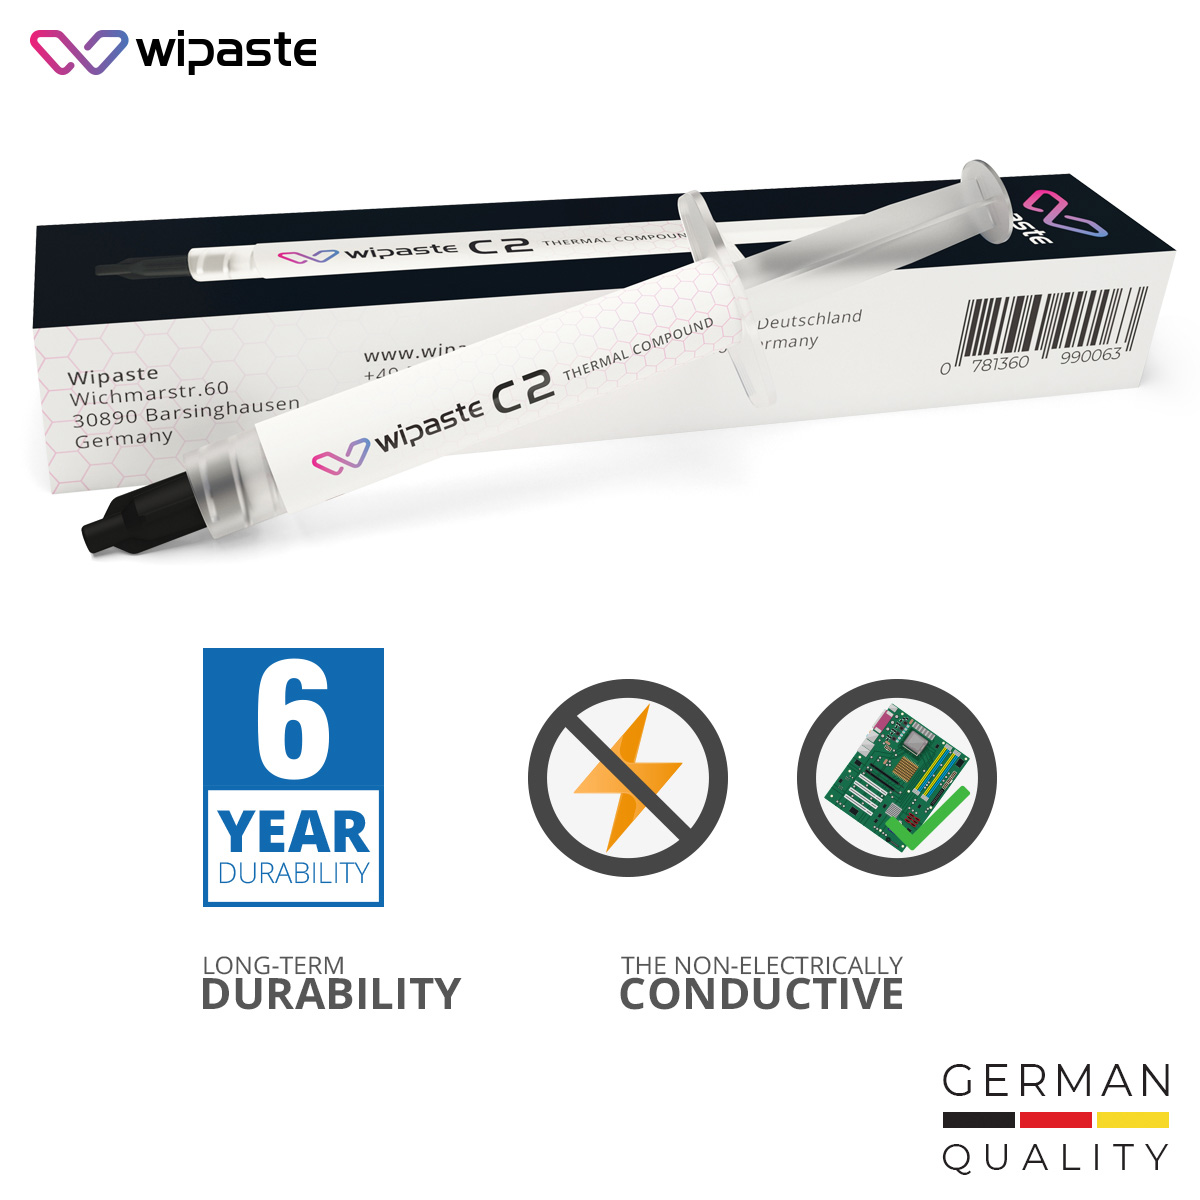 Wipaste C2 Thermal Compound